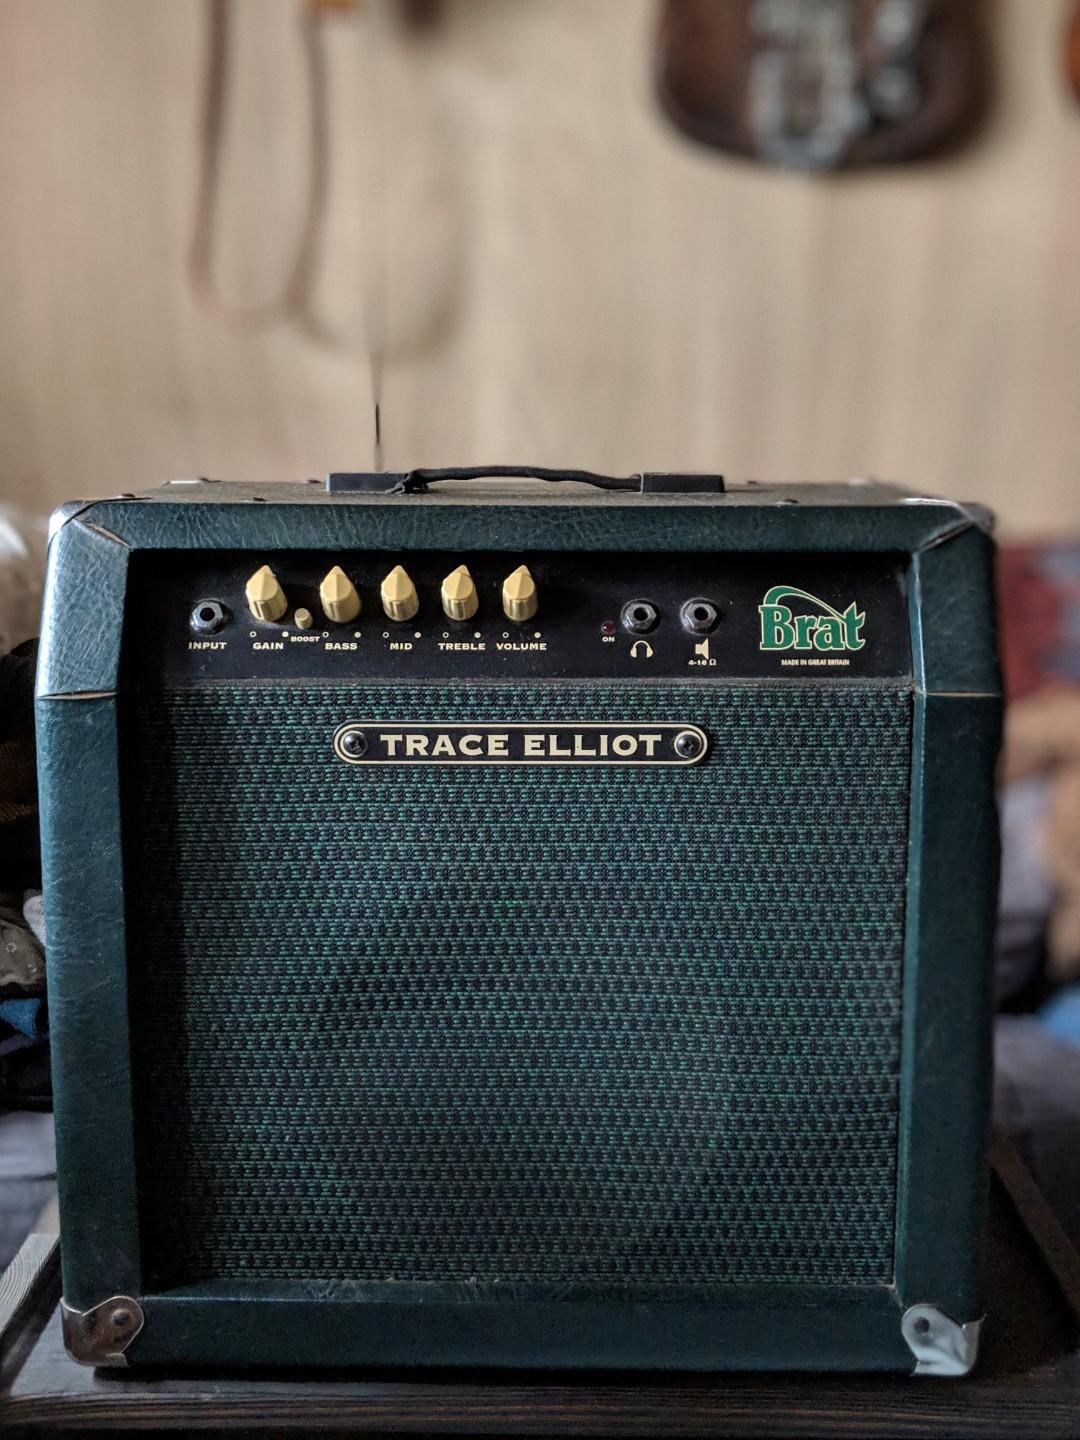 Trace Elliot Brat (vintage guitar amp, made in England